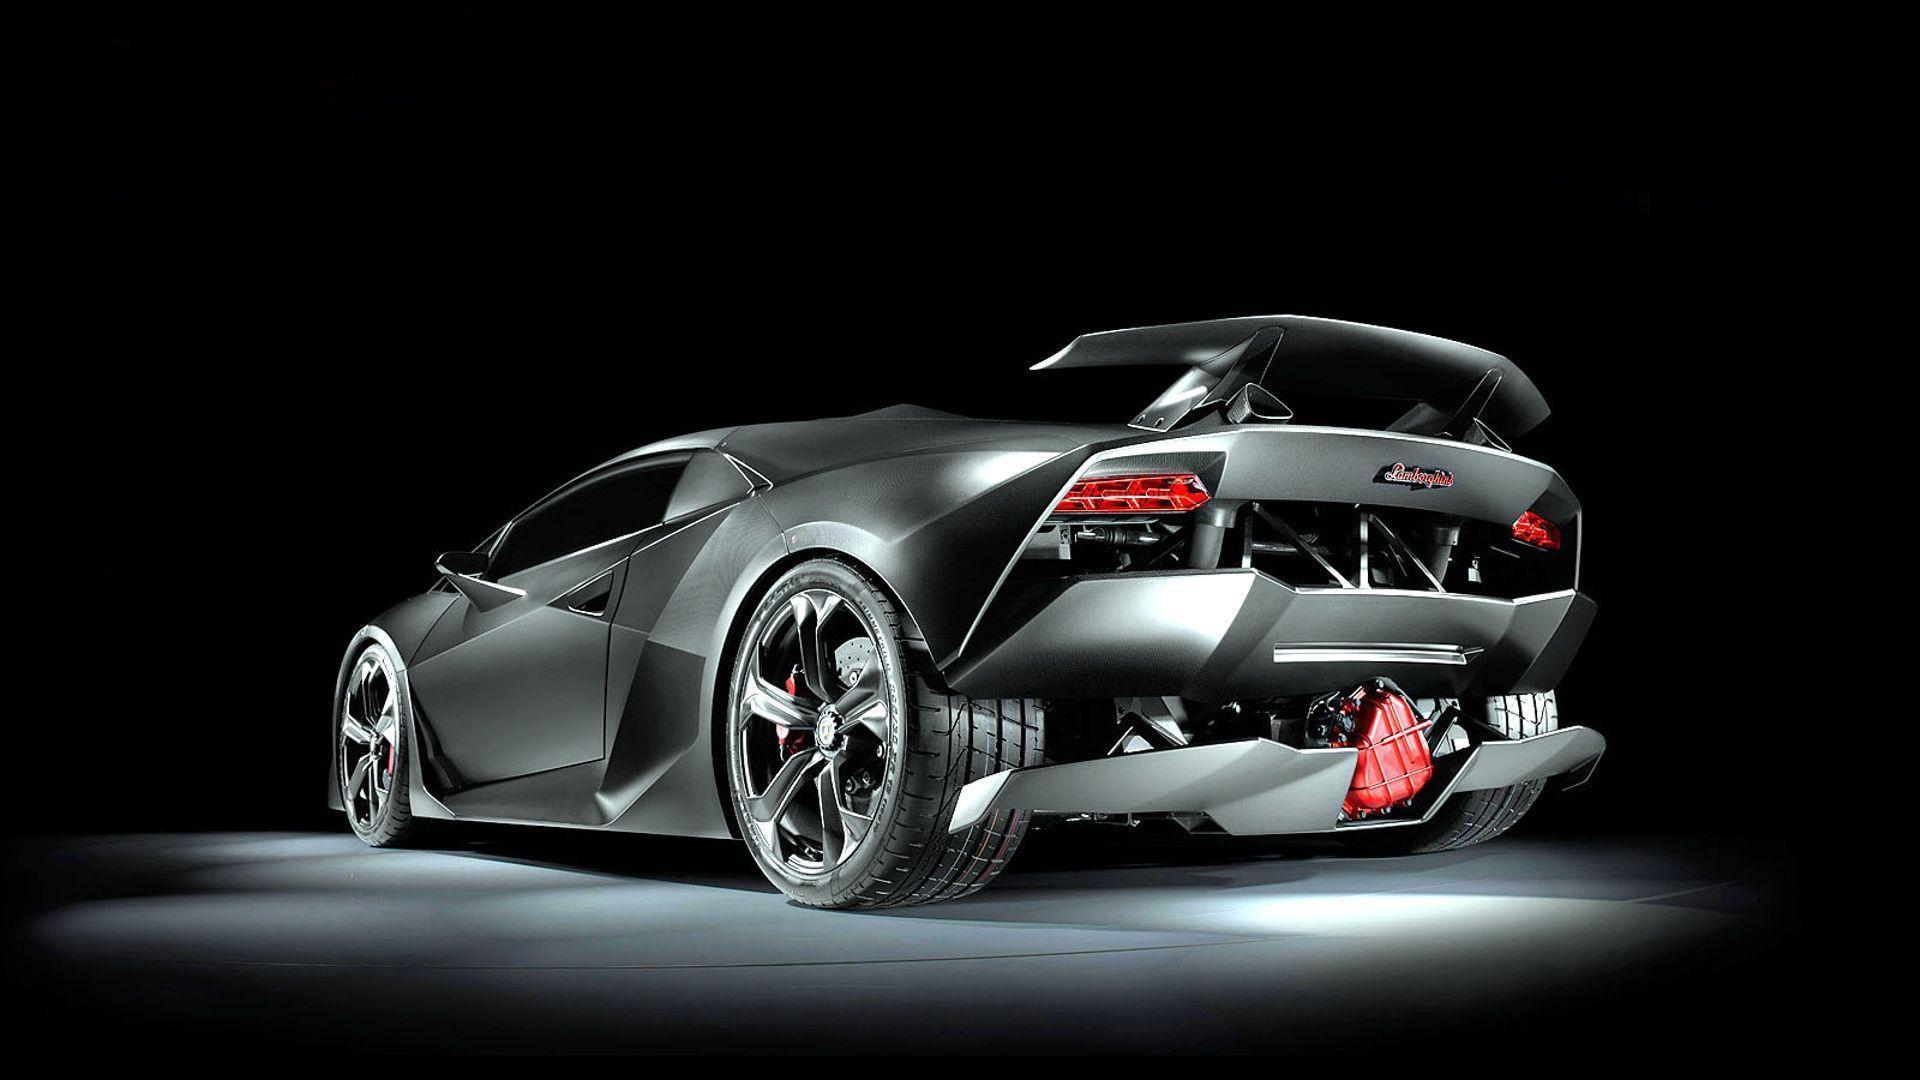 Lamborghini Sesto Elemento Wallpapers - Wallpaper Cave